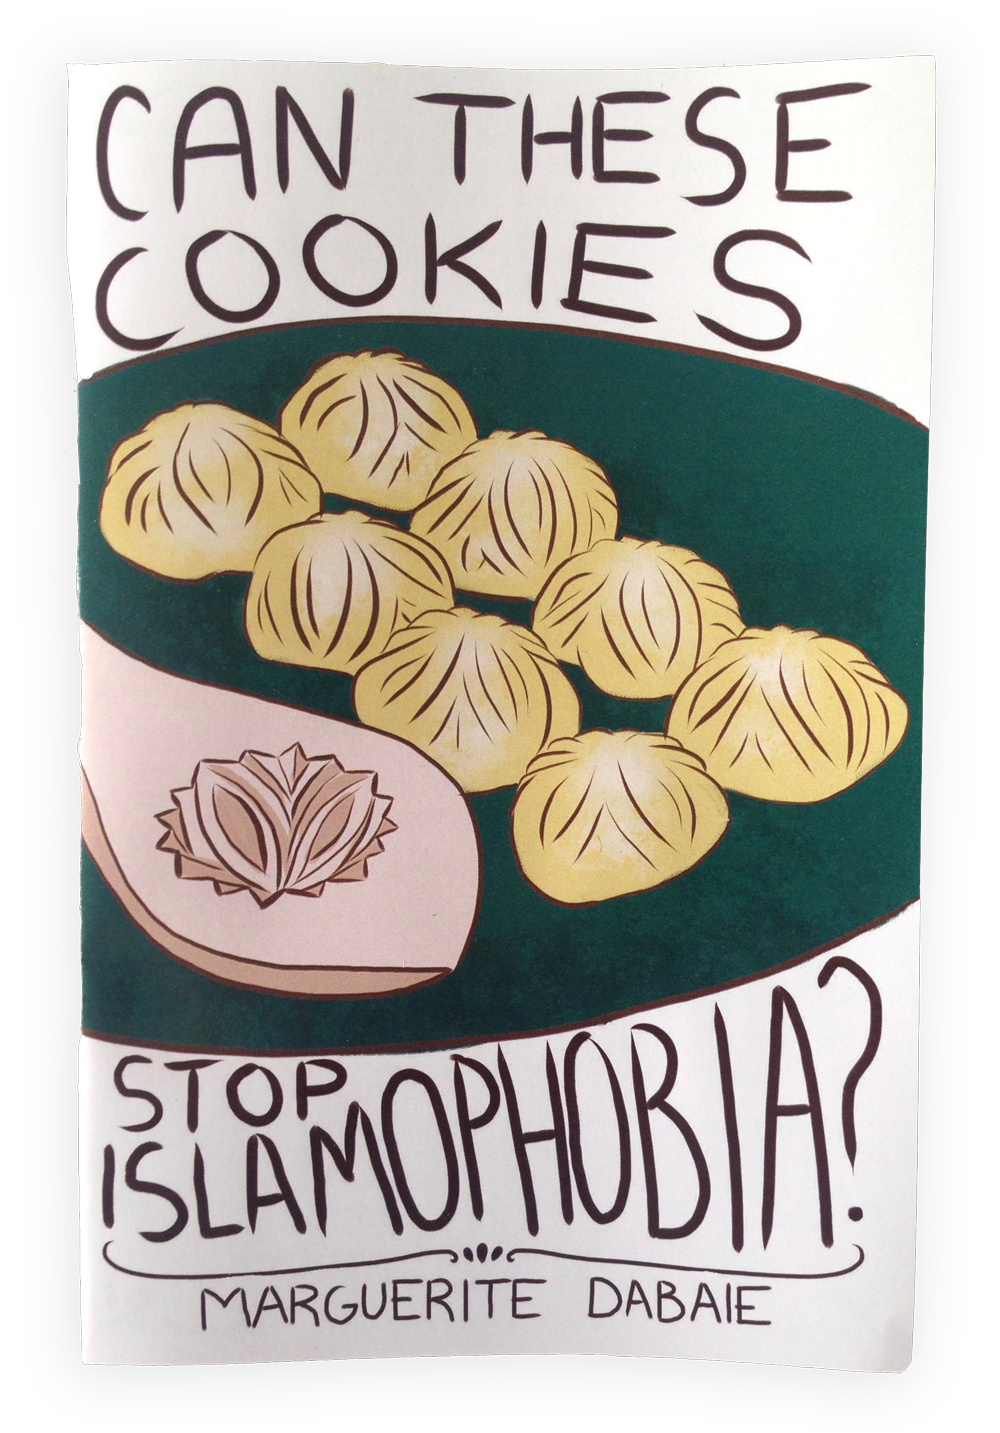 Can These Cookies Stop Islamophobia?